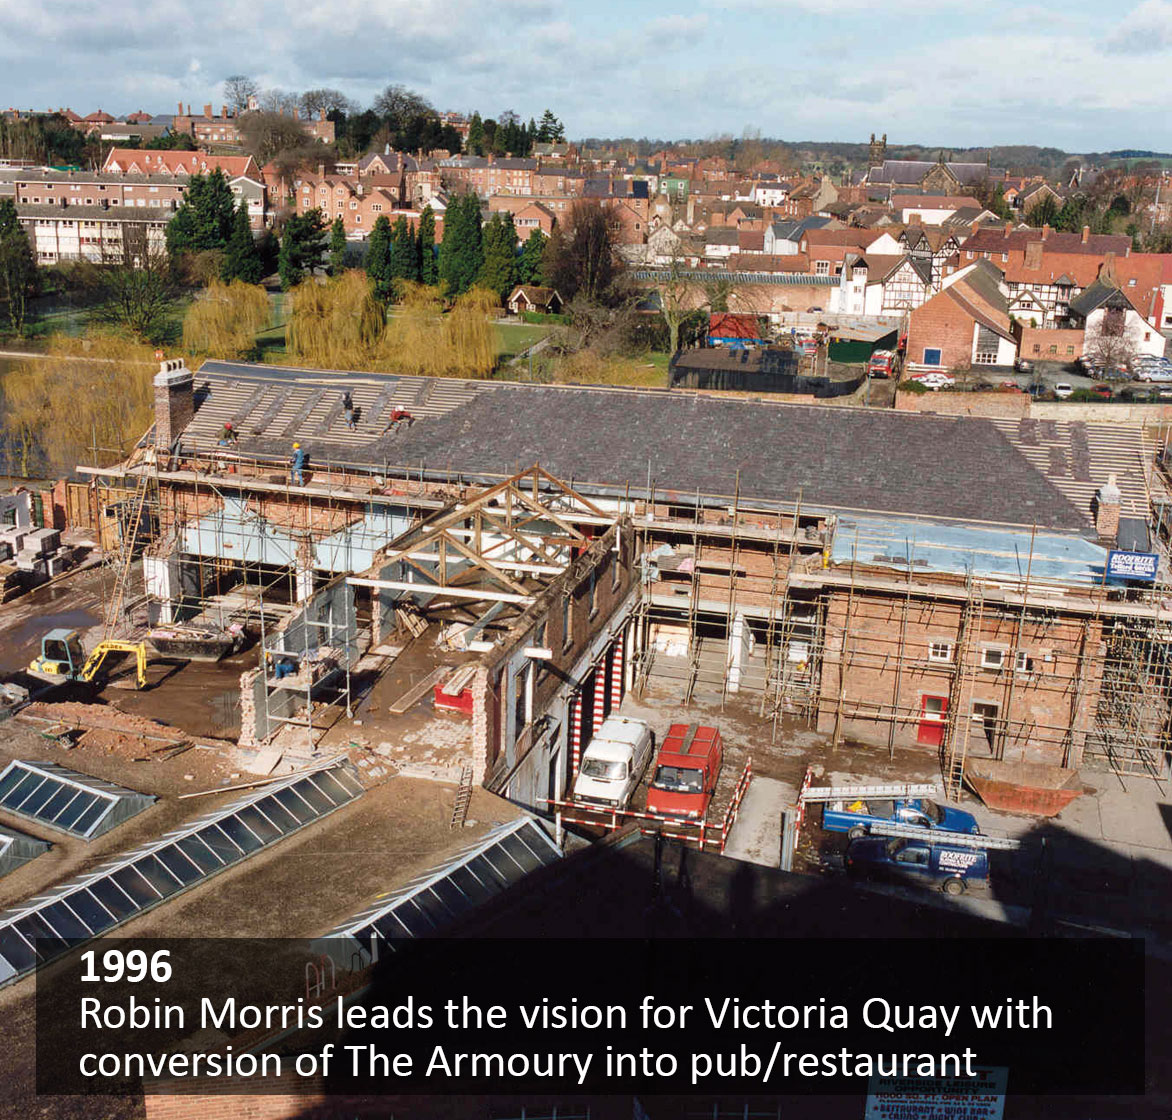 Robin Morris leads the vision for Victoria Quay with conversion of The Armoury into pub/restaurant